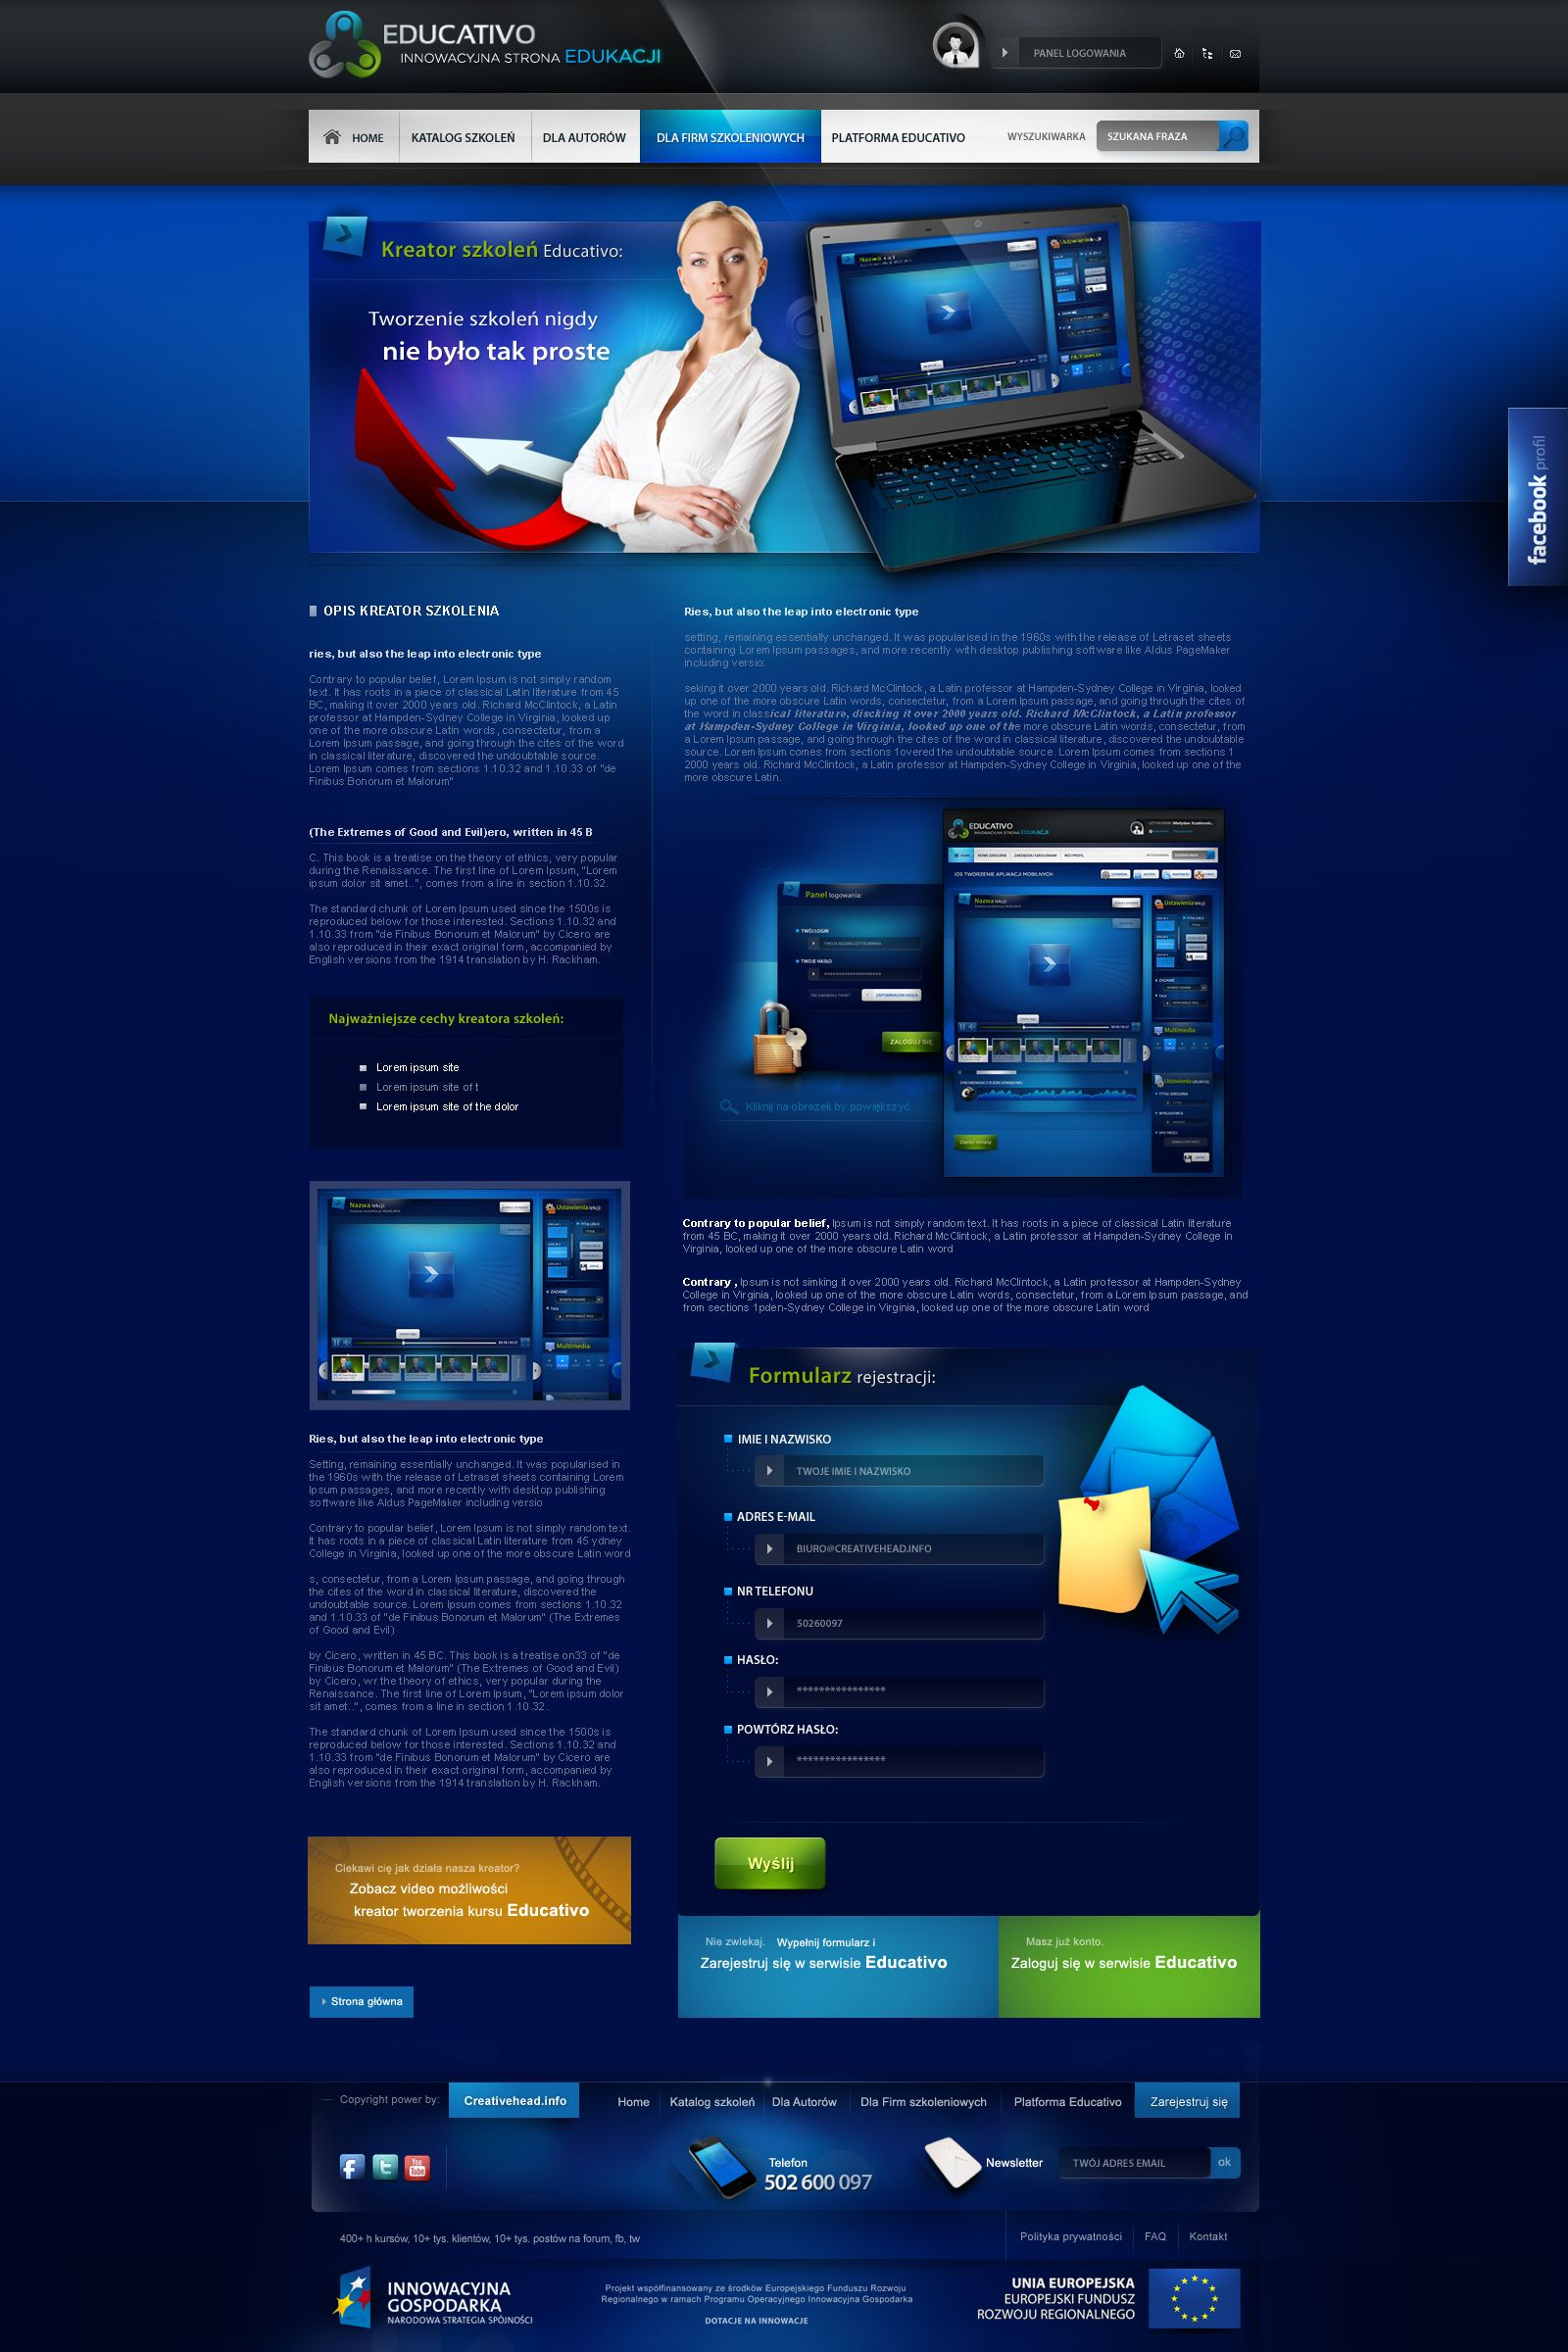 Educativo e learning platform - subpage by webdesigner1921.deviantart.com on @deviantART